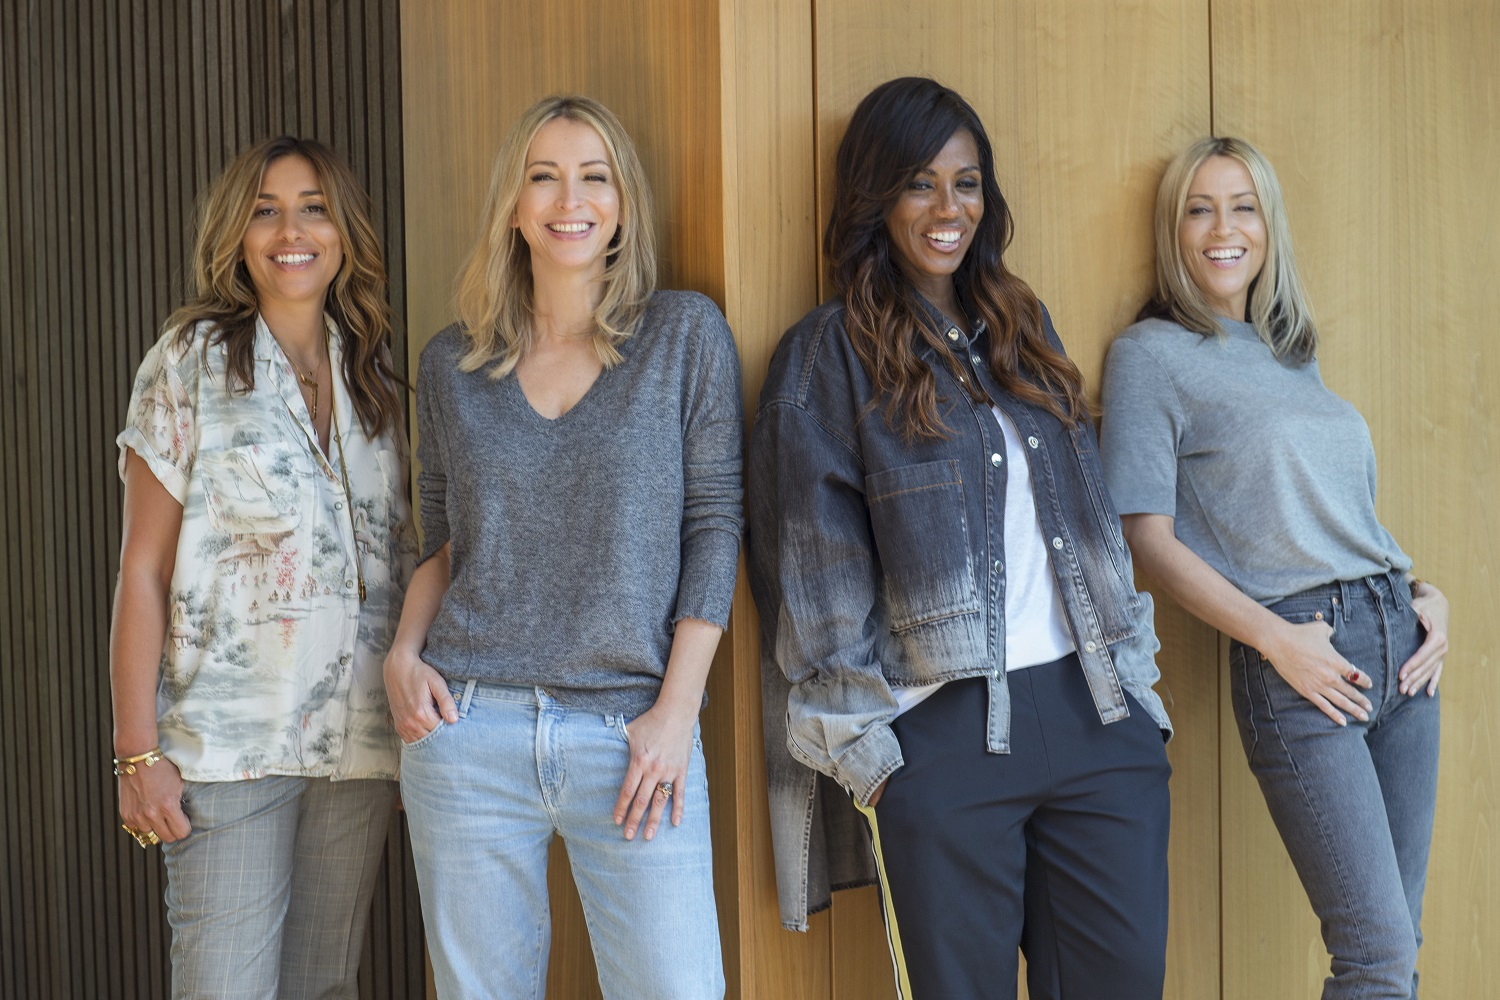 All Saints Talk About What Pride Season Means To Them